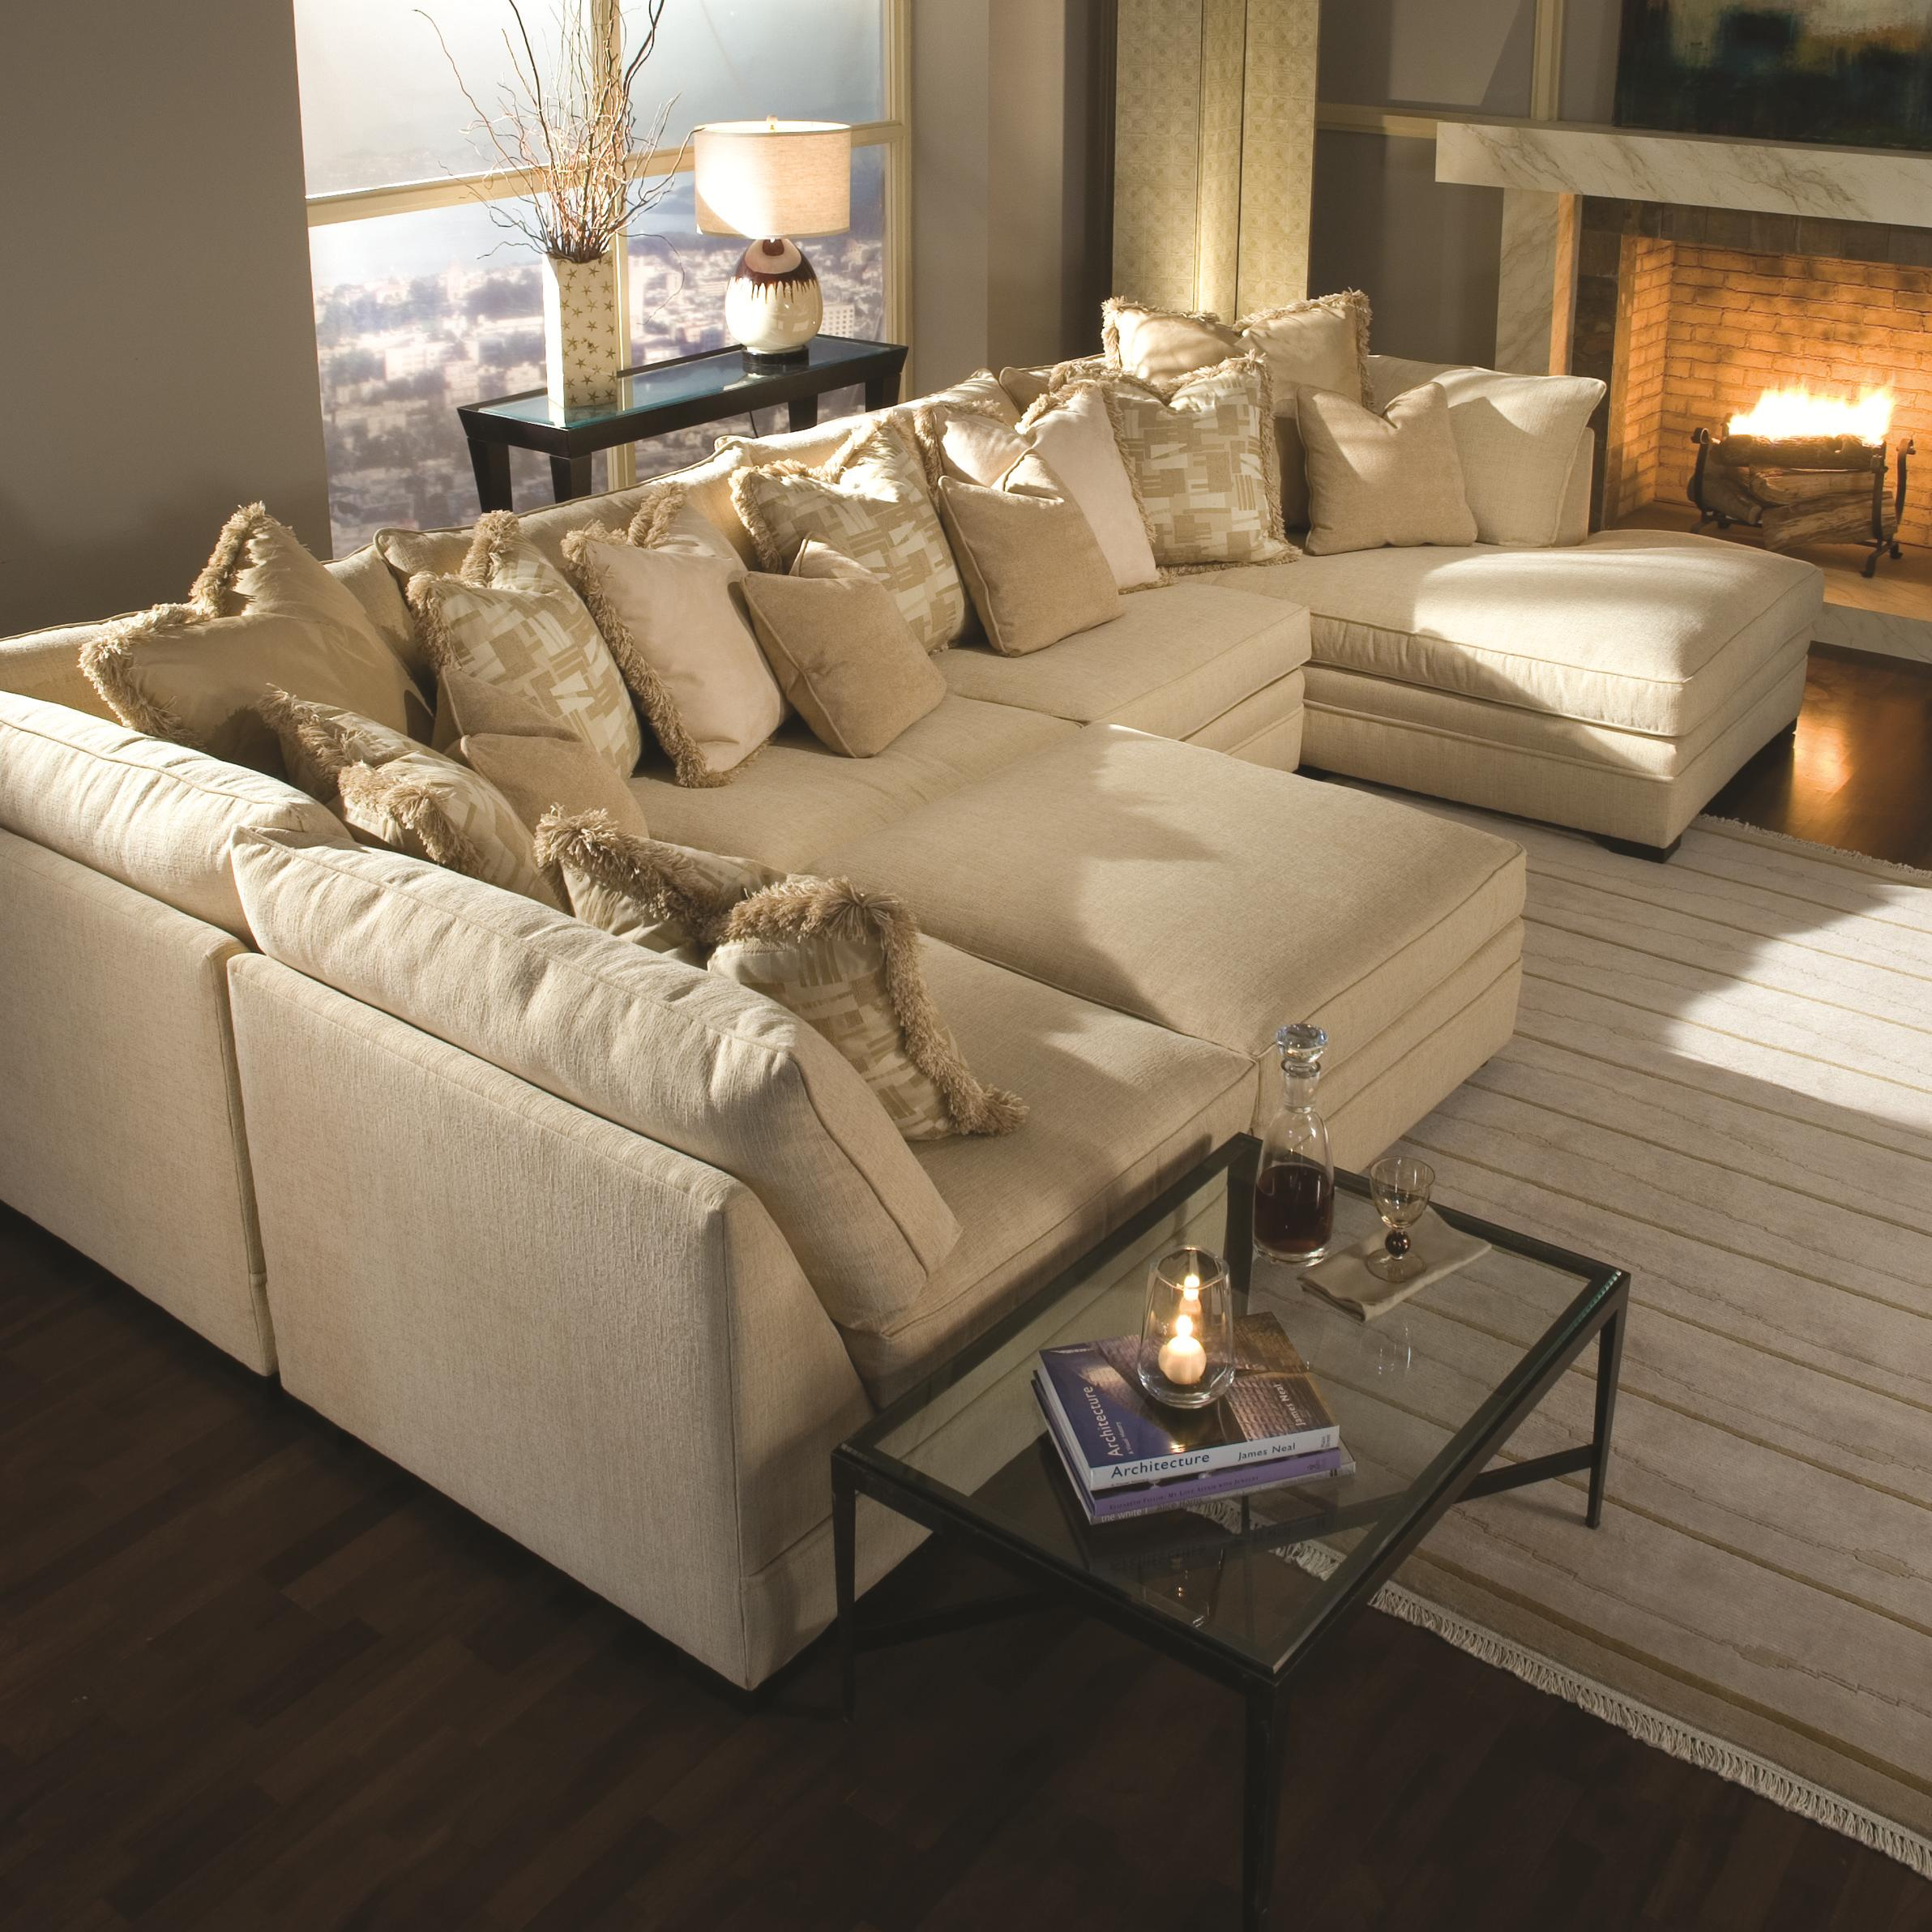 Huntington House Furniture Quality Huntington House 7100 Godfrey Contemporary U Shape Sectional Sofa